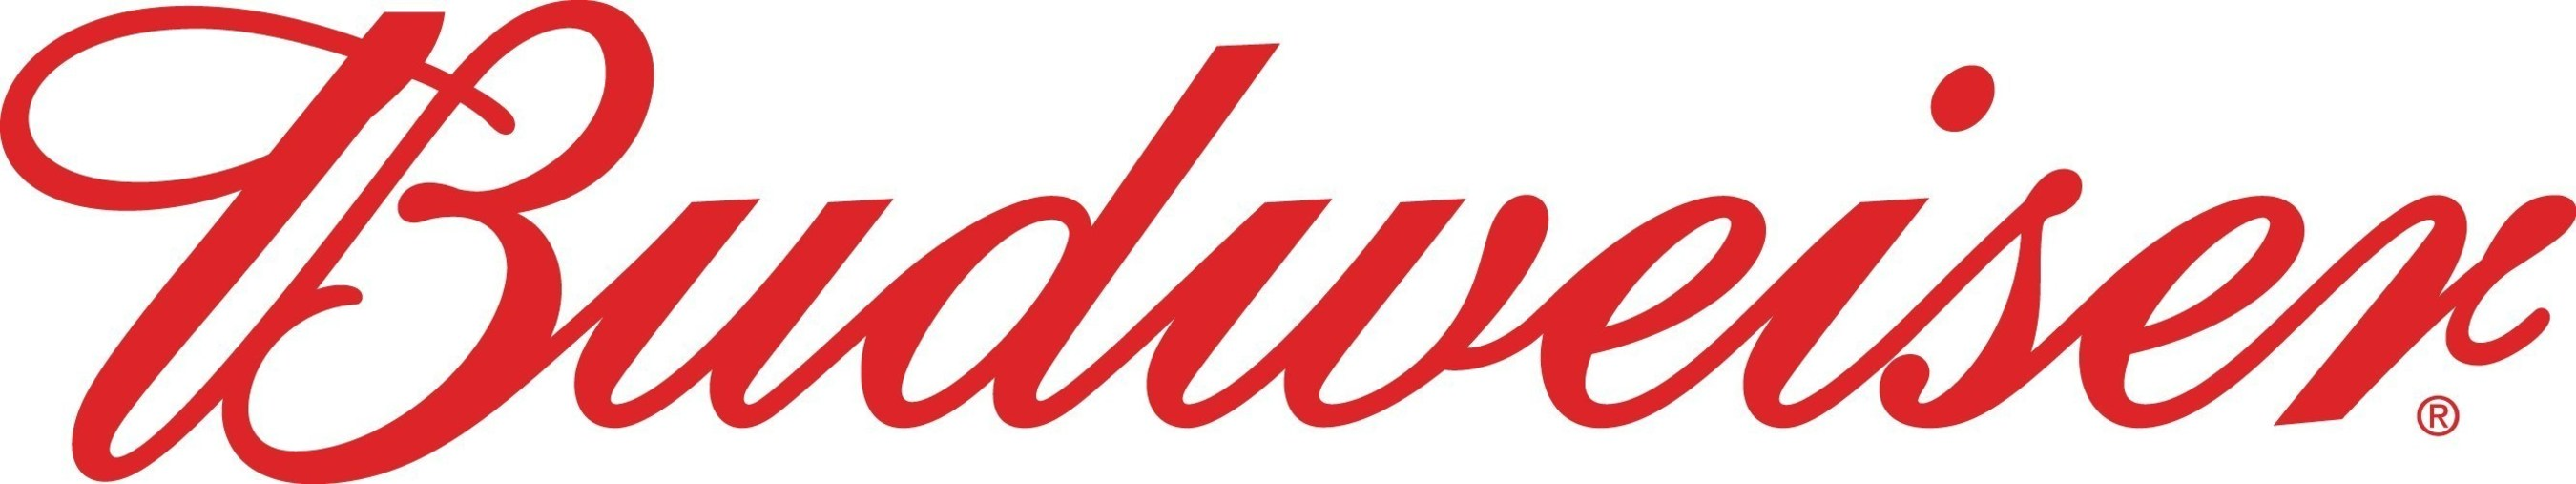 budweiser joins forces with six elite athletes to support their rh prnewswire com budweiser logo vector budweiser logo scam